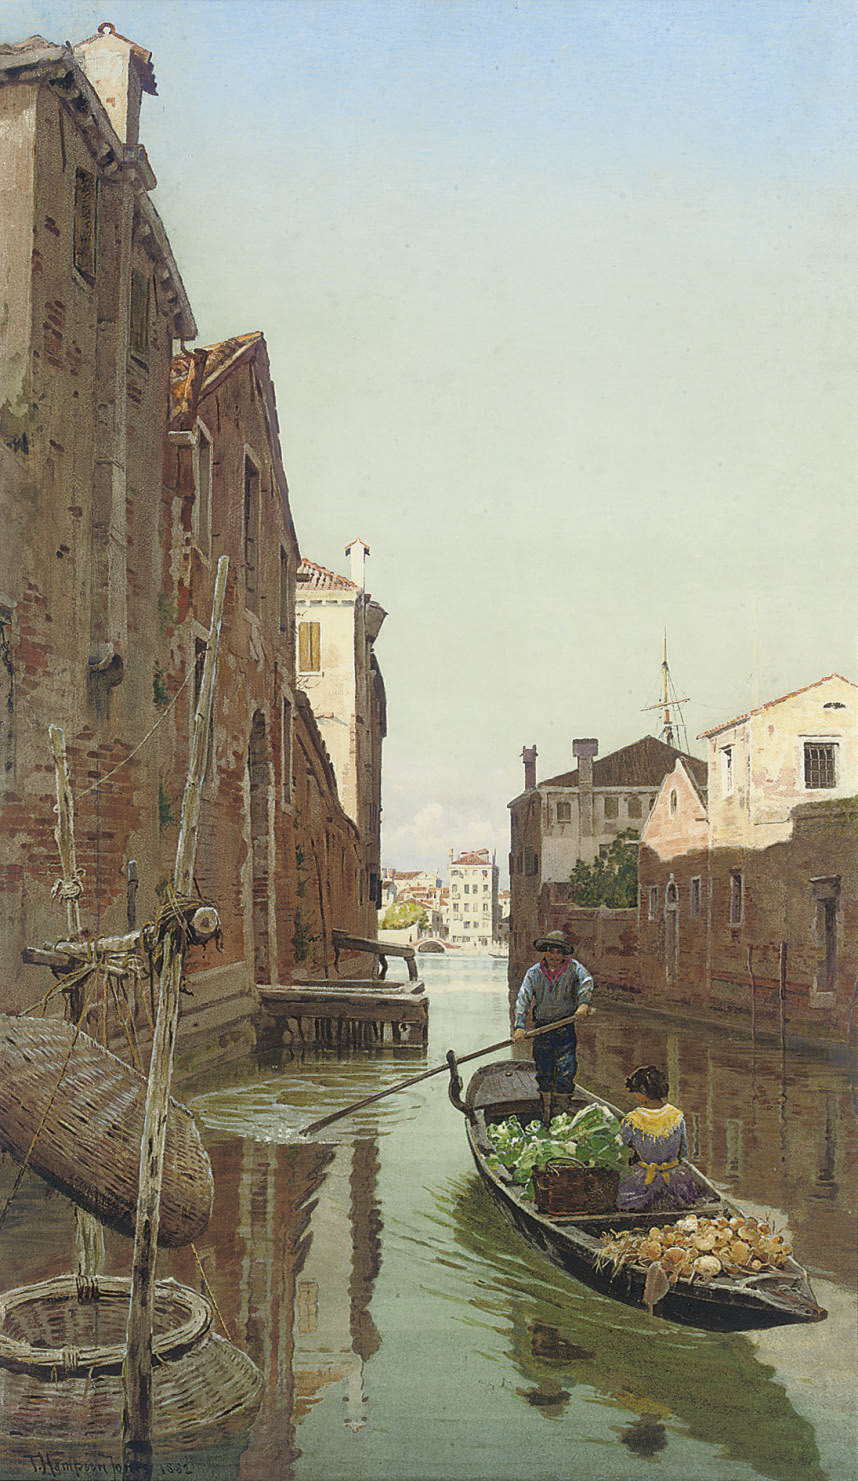 A gondola loaded with vegetables on a Venetian backwater